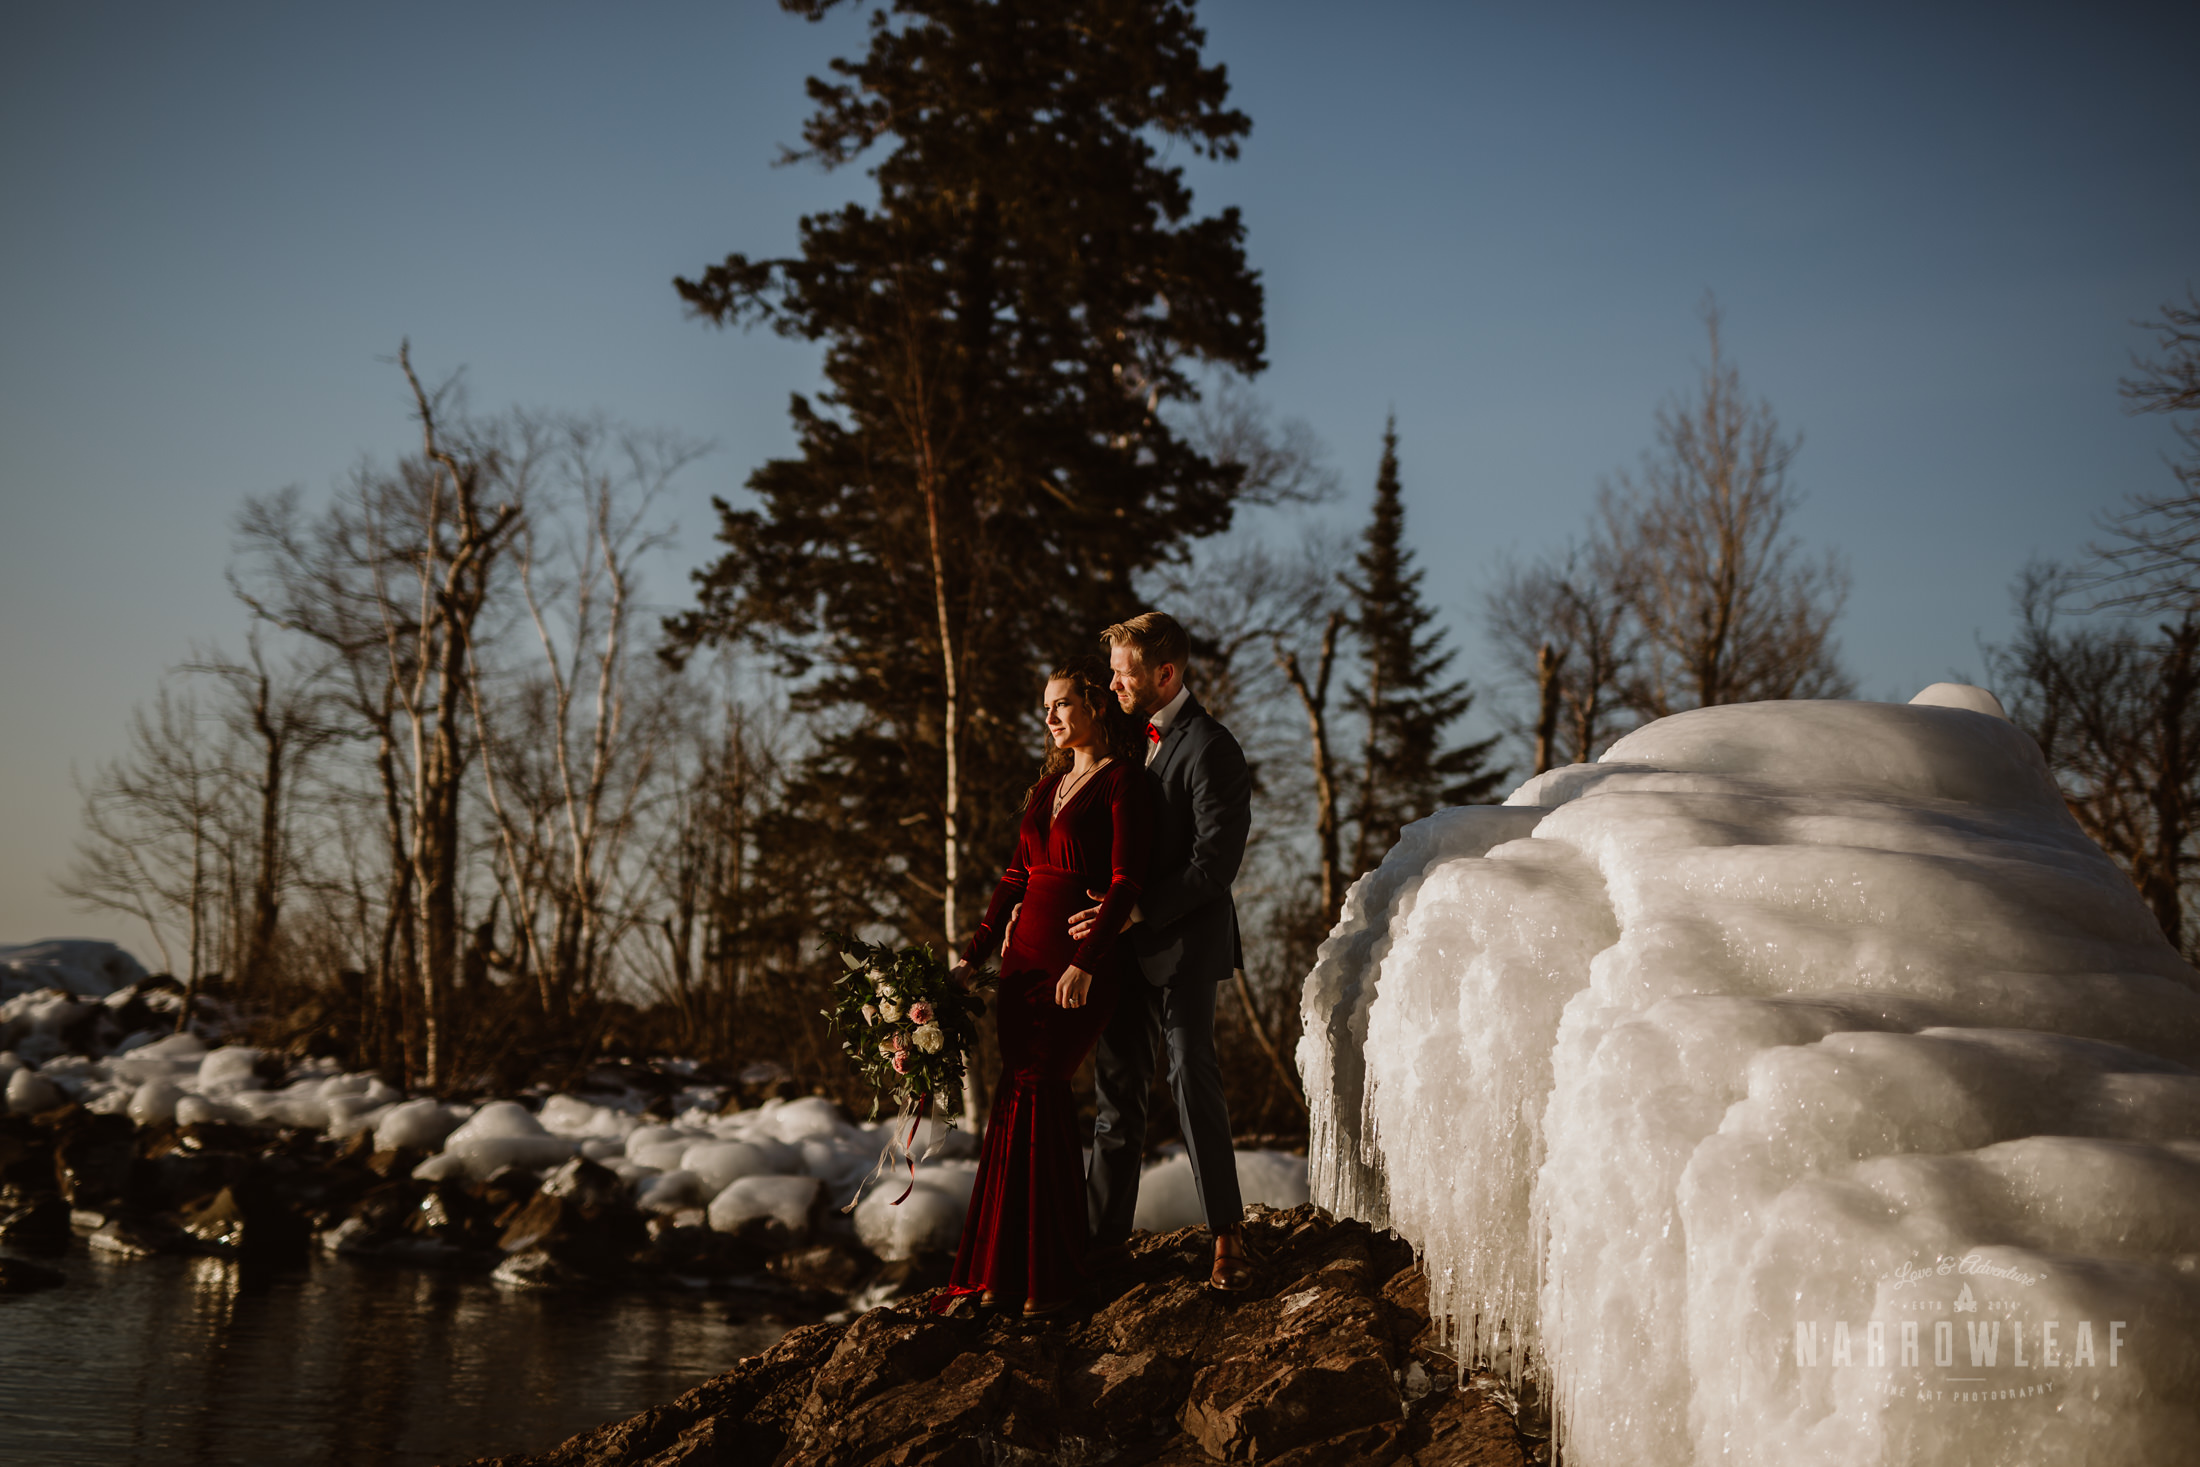 north-shore-minnesota-winter-elopement-photography-Narrowleaf_Love_and_Adventure_Photography-8472.jpg